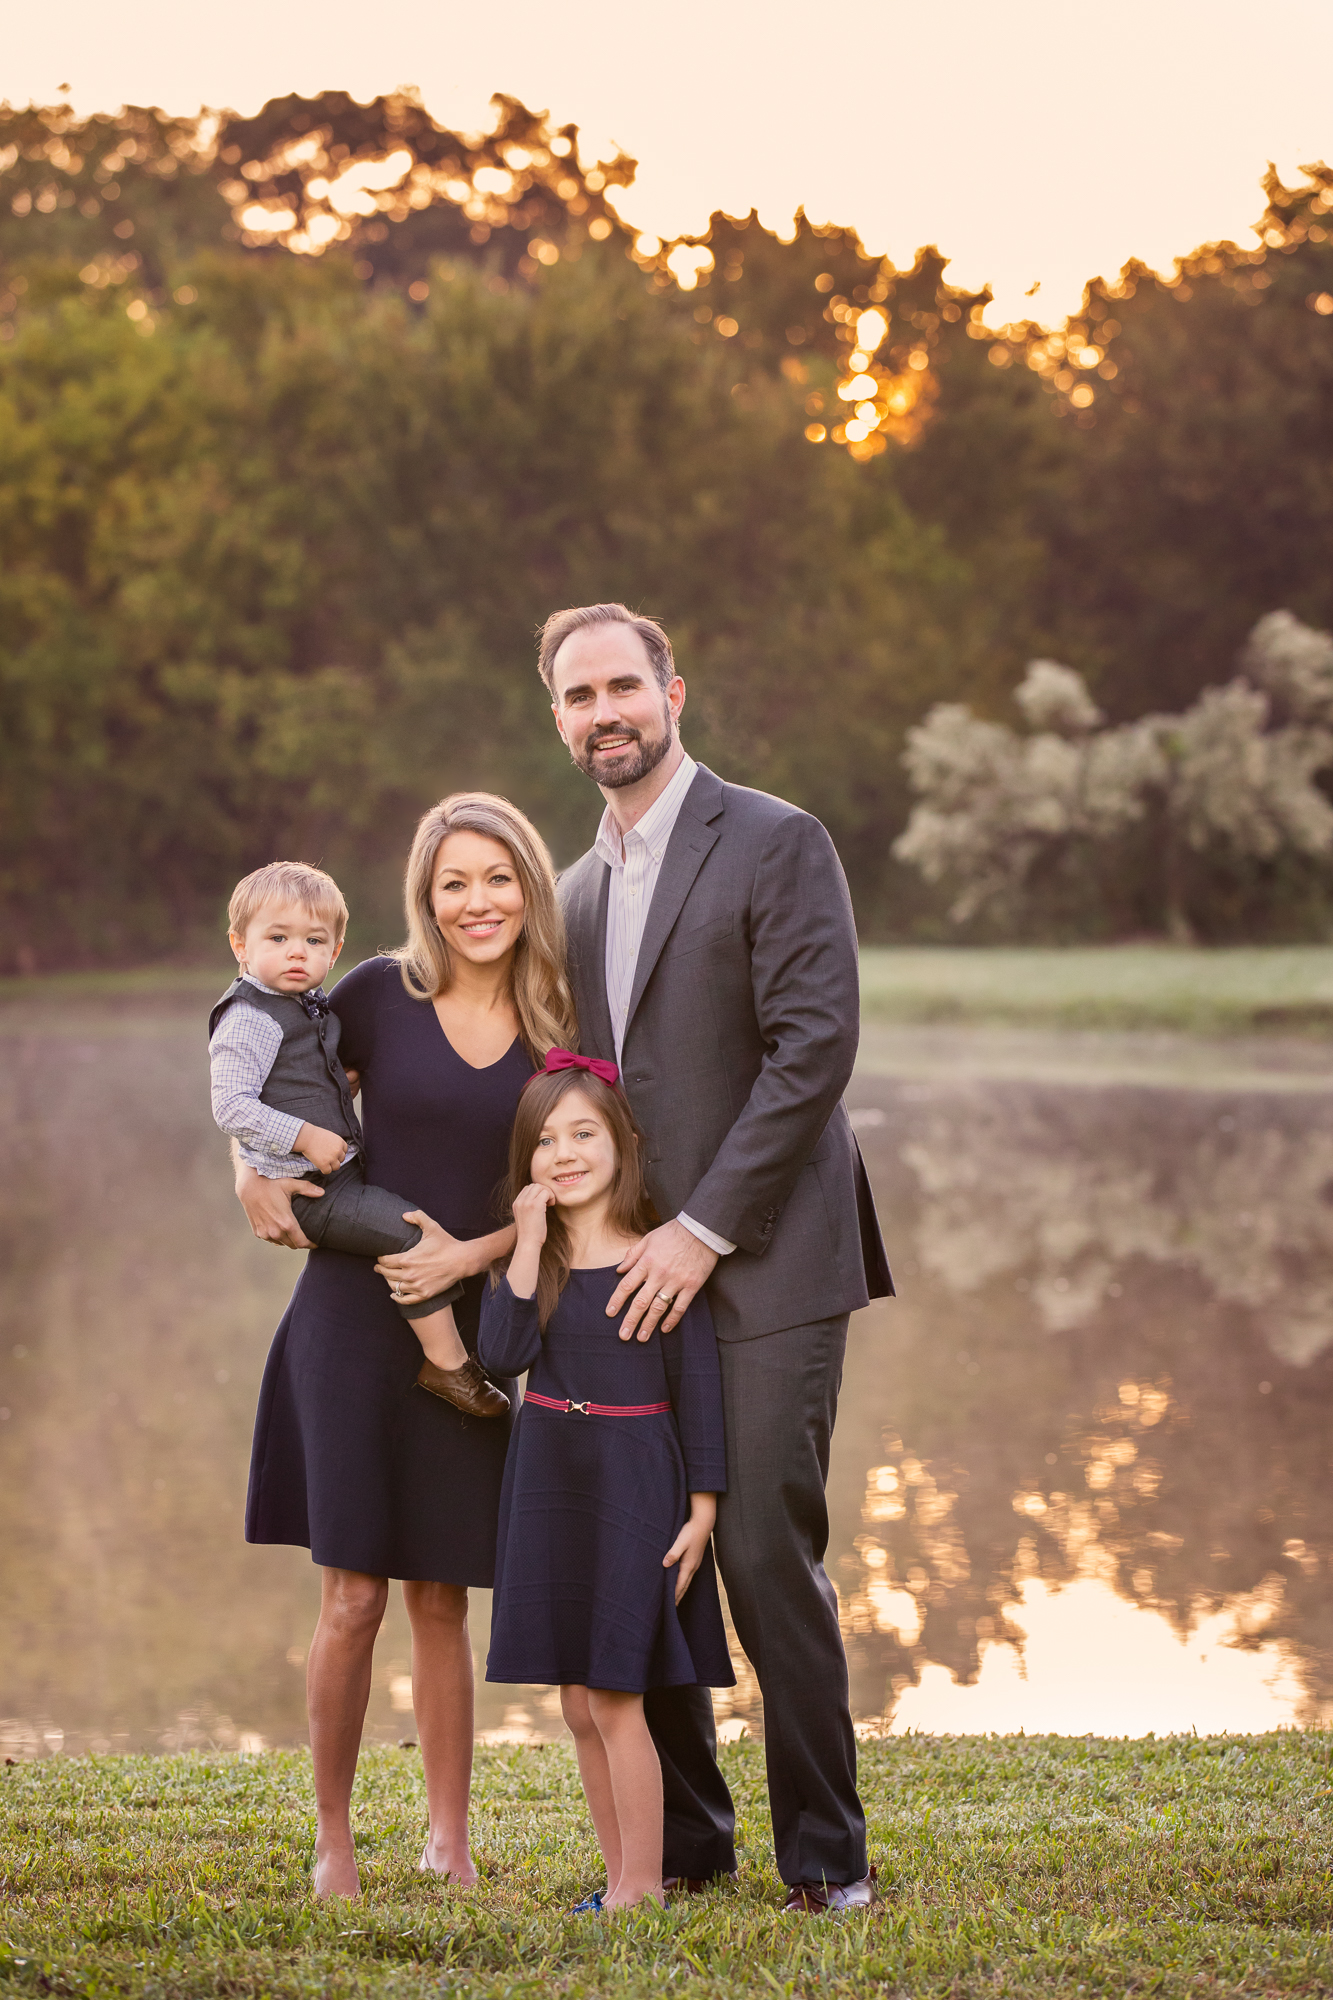 Fall Family Portraits Colleyville Texas